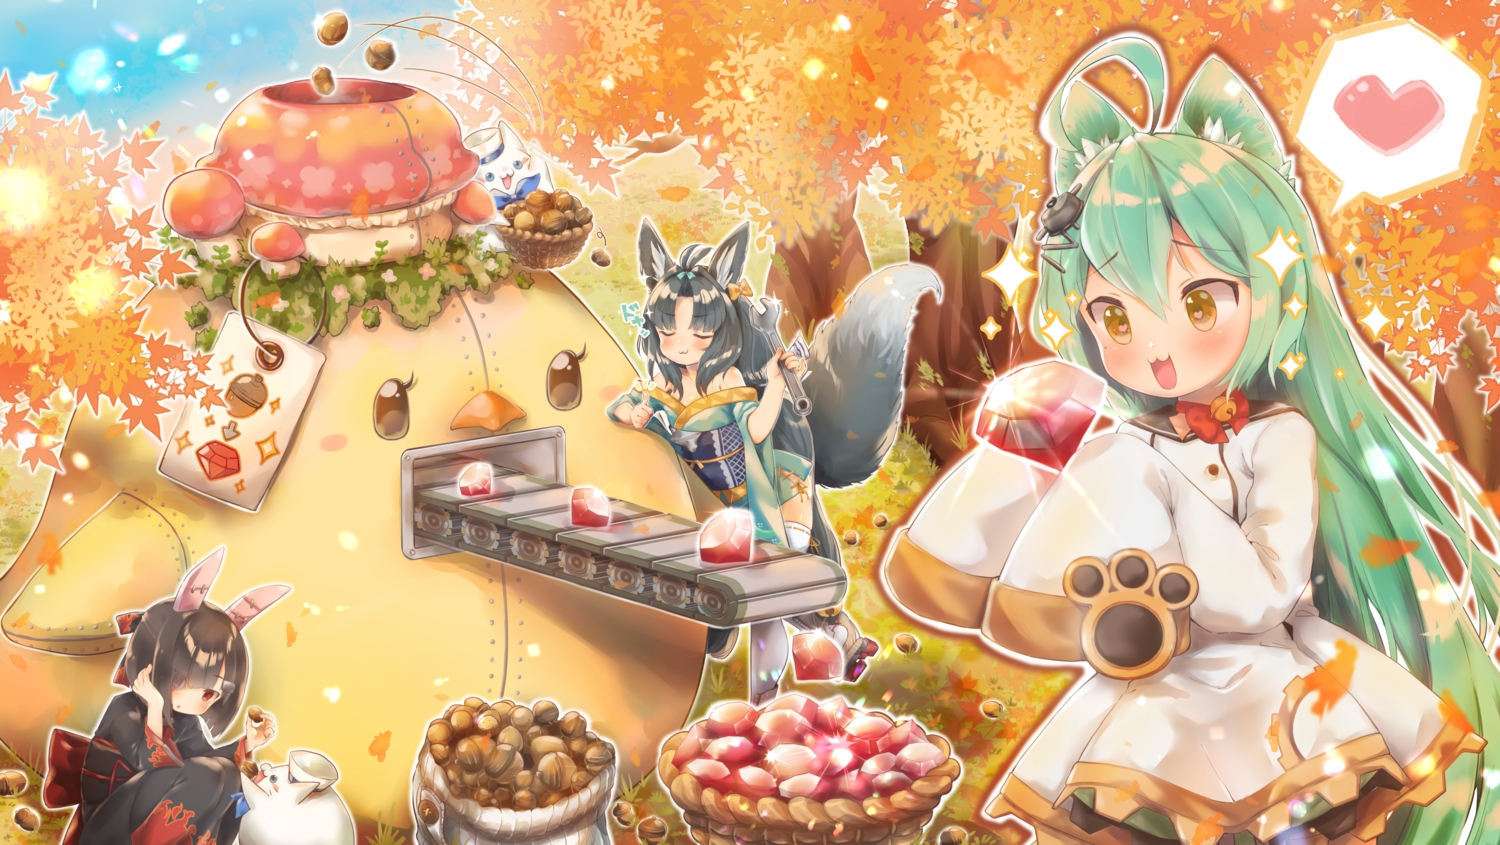 akashi_(azur_lane) animal animal_ears anthropomorphism autumn azur_lane black_hair bunny_ears cat catgirl foxgirl green_hair japanese_clothes kimono kuma_(pompon_tail) long_hair manjuu_(azur_lane) red_eyes shiranui_(azur_lane) short_hair swimsuit tail tree yellow_eyes yuubari_(azur_lane)